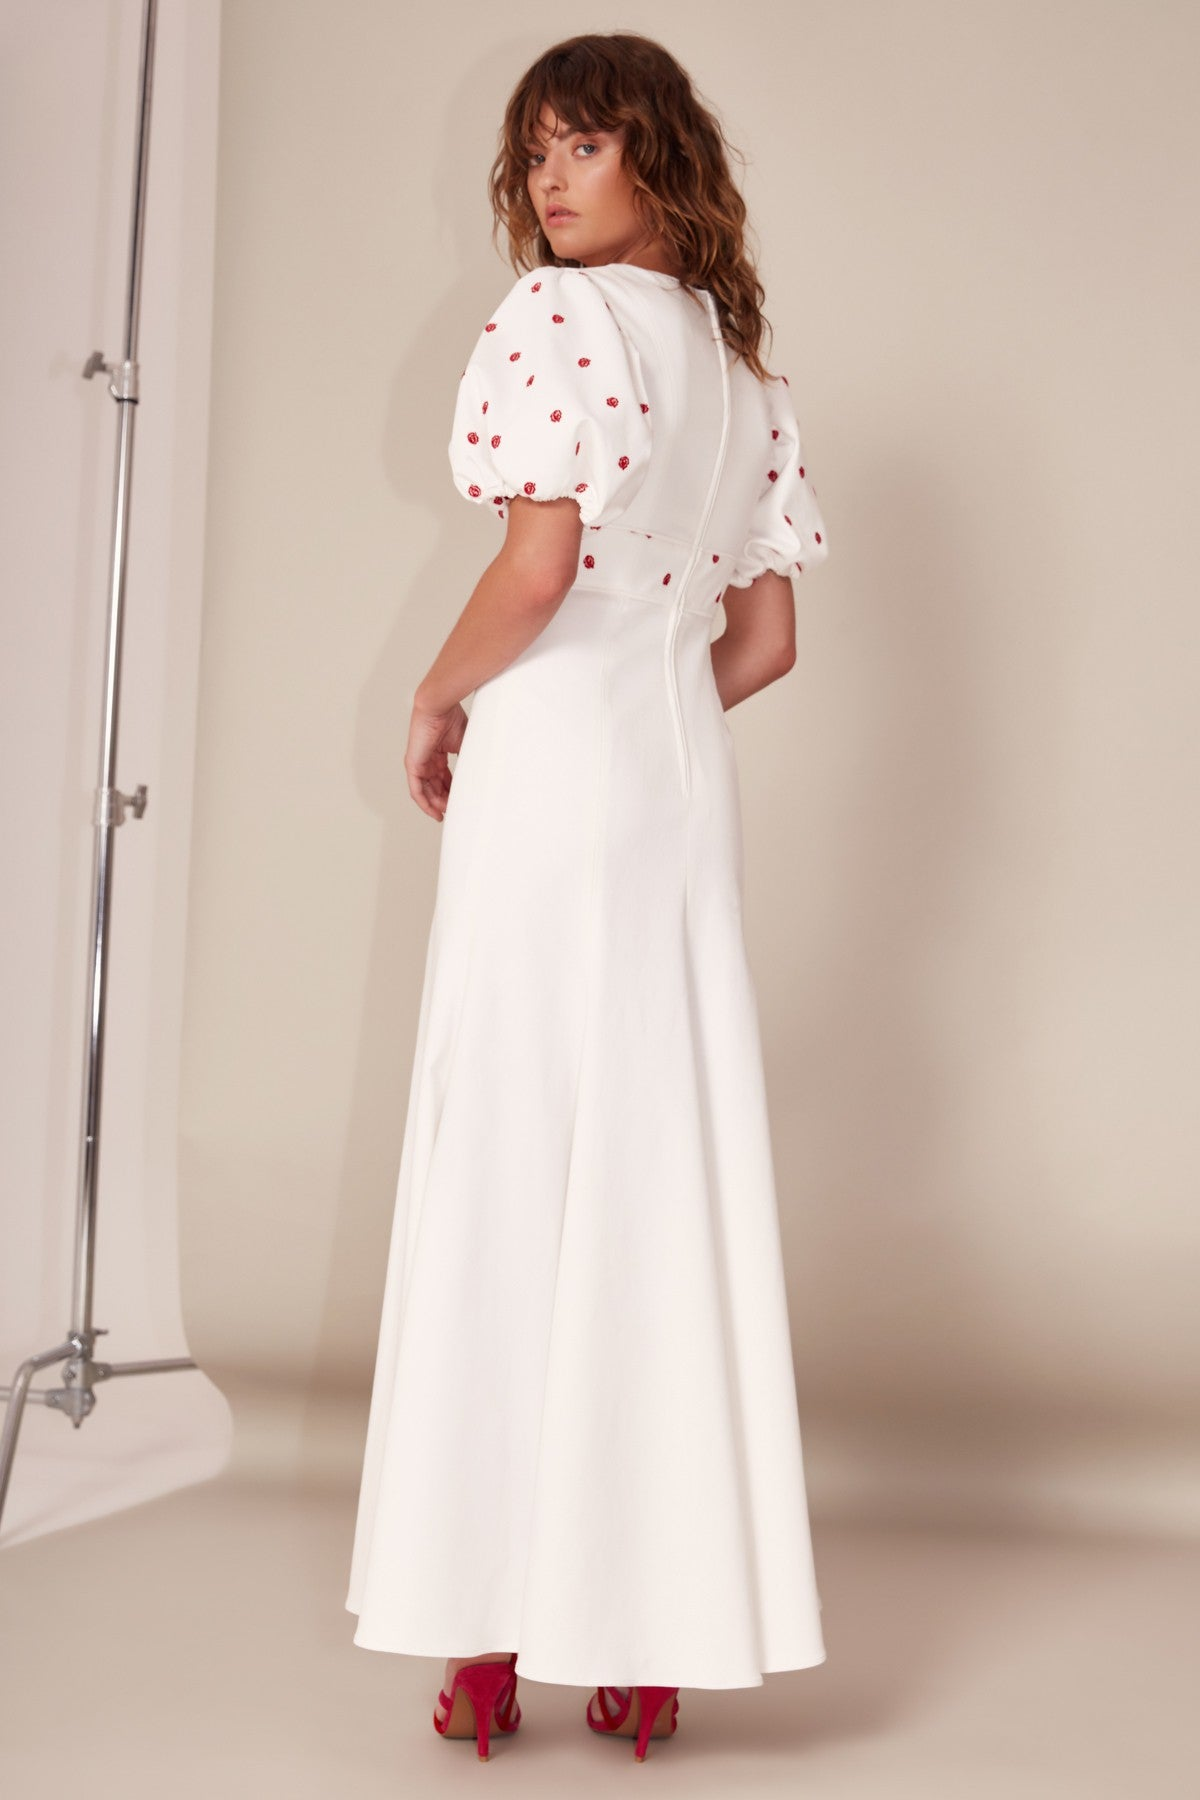 C/MEO COLLECTIVE | HARMONIOUS SHORT SLEEVE GOWN ivory | C/MEO COLLECTIVE